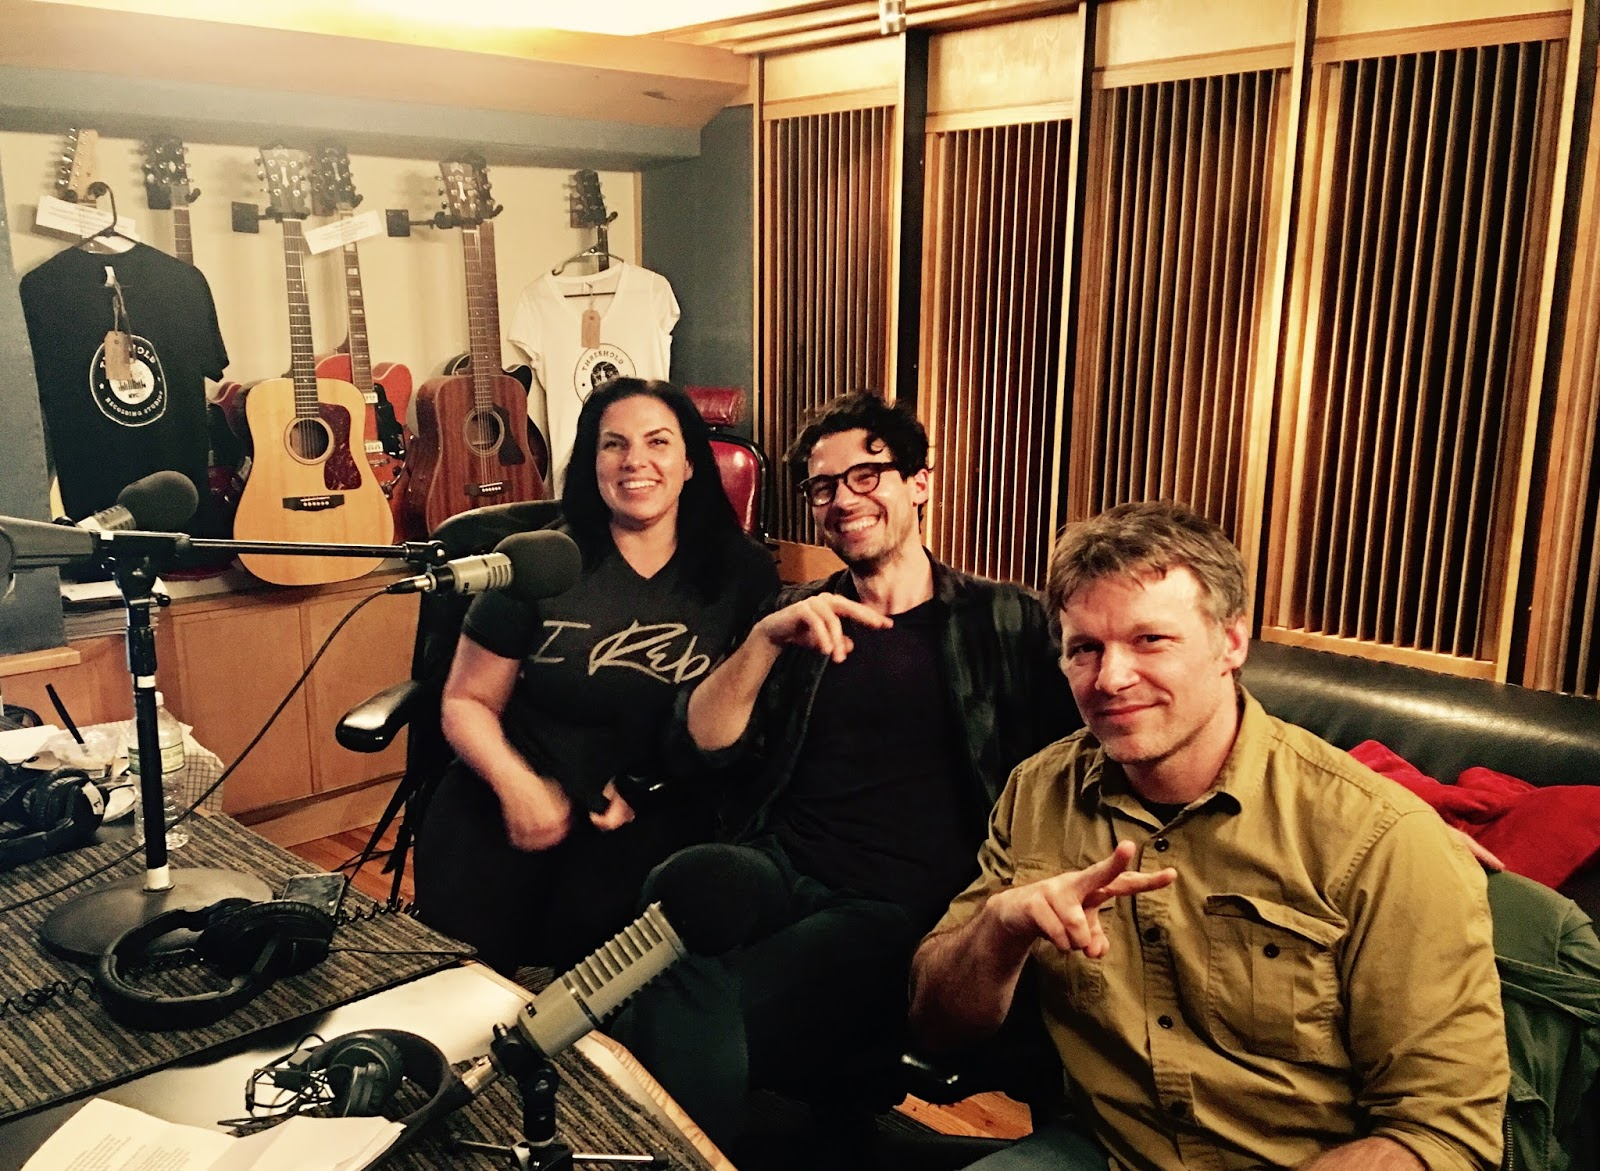 SYFY Podcasts, Voice Overs & School of Rock at Threshold Recording Studios NYC